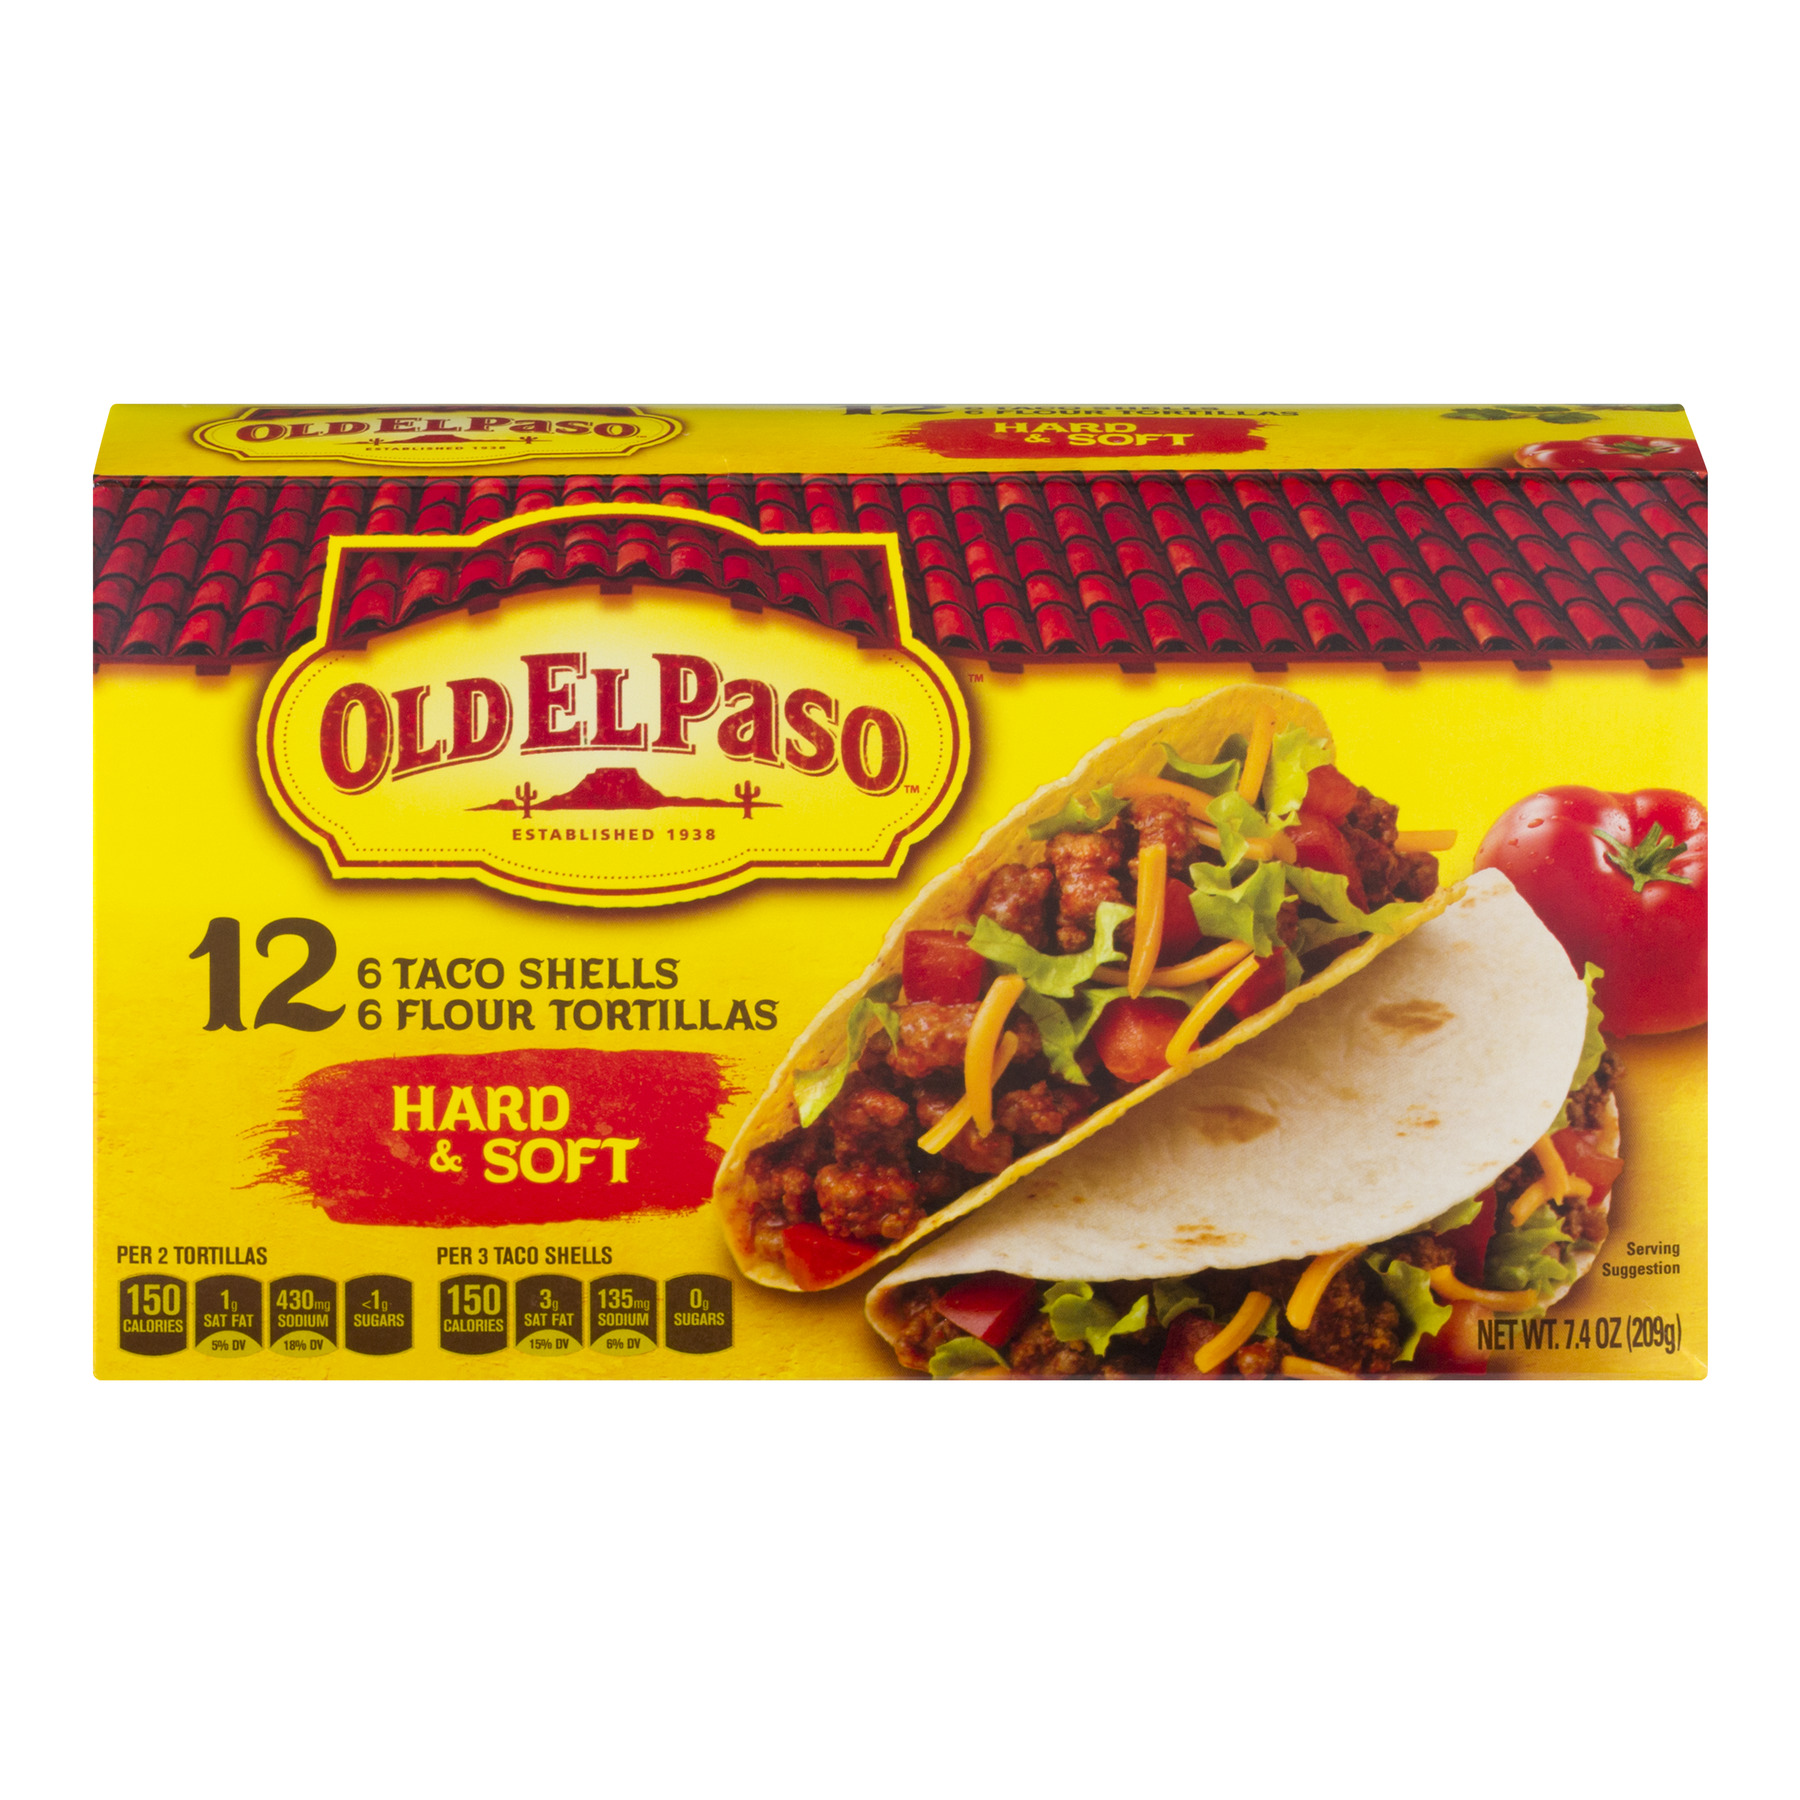 Old El Paso™ Hard and Soft Taco Shells 12 ct 7.4 oz Box